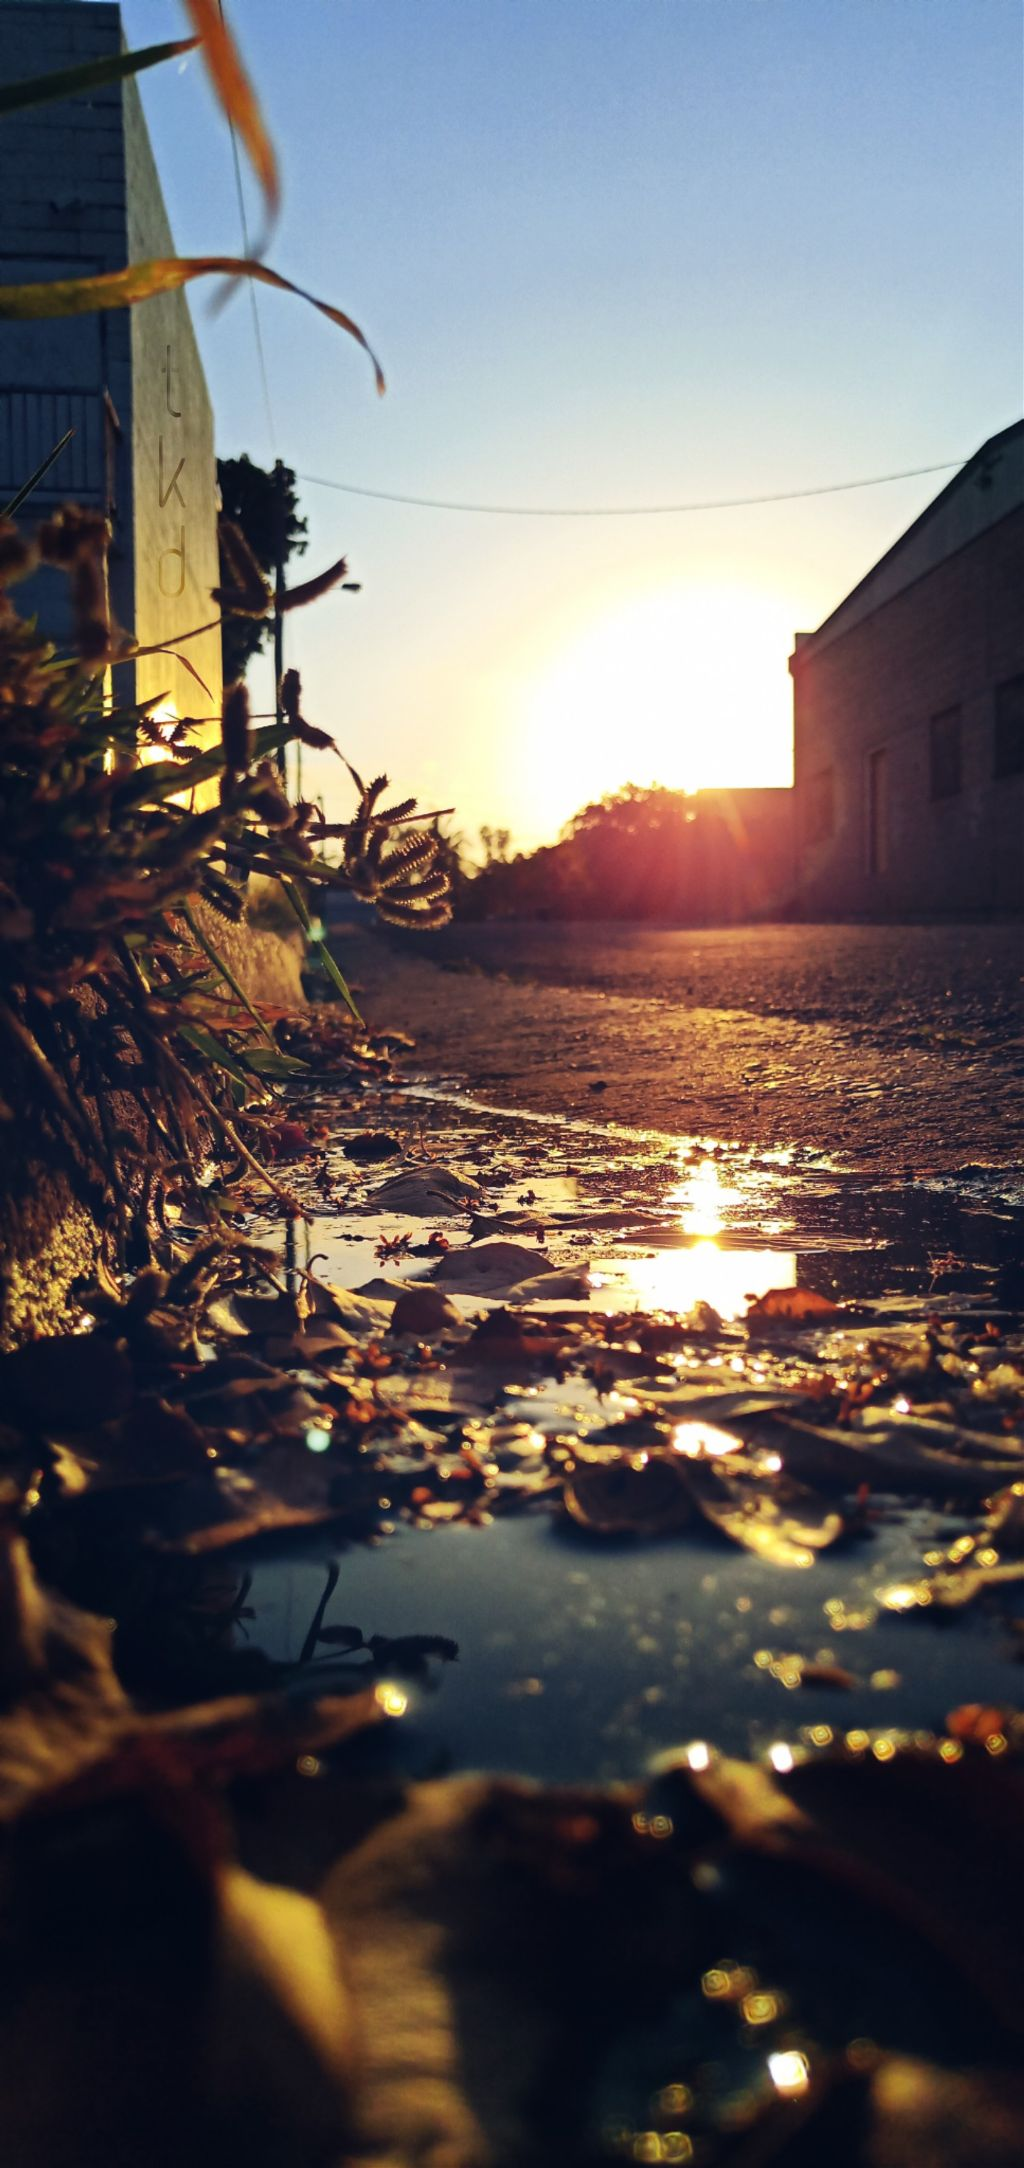 #sunrise #alleyway #lane #gutter #kerb #puddle #water #reflection #leaves #buildings #myphoto